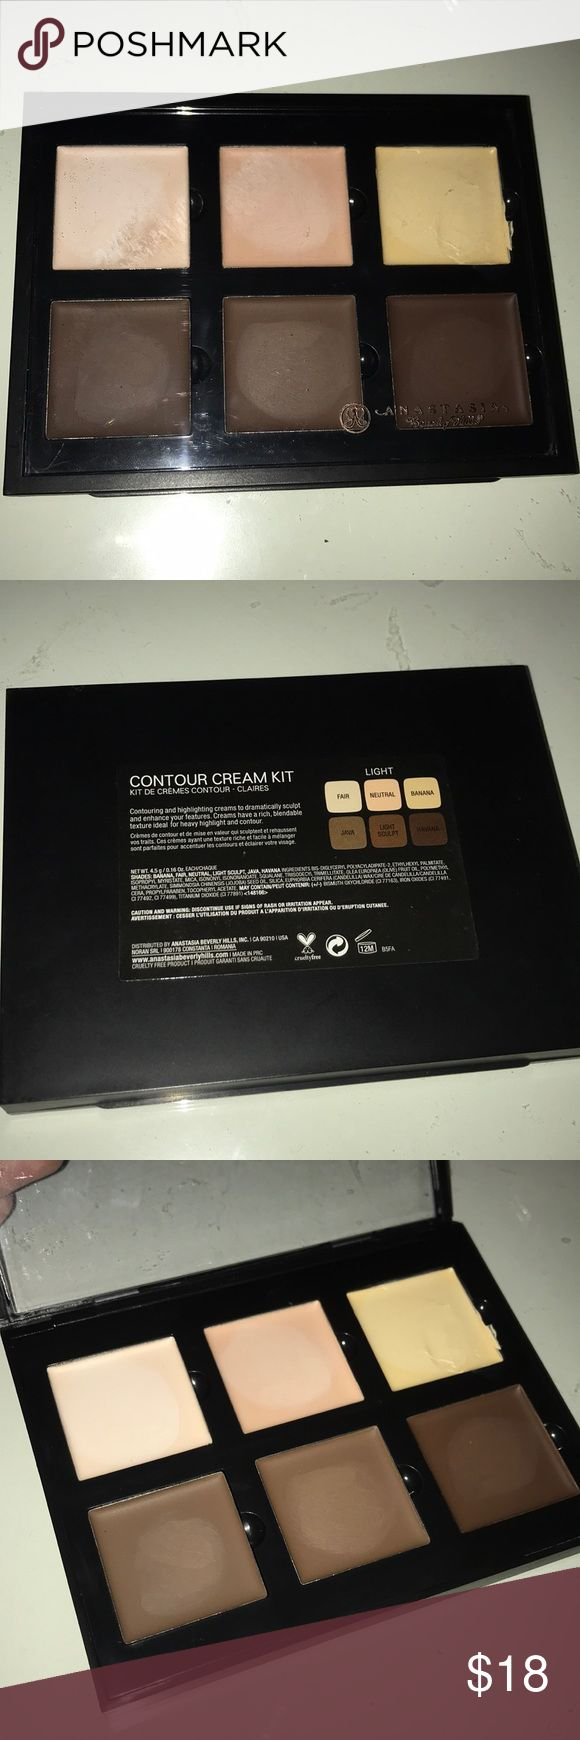 ANASTASIA BEVERLY HILLS CREAM CONTOUR KIT IN LIGHT • Never used, only swatched • Authentic!  • Nothing wrong with product, I never cream contour • Bundle to save!  • Please allow 24-48 hours to ship • NO TRADES • Price is reasonable and FIRM Anastasia Beverly Hills Makeup Bronzer